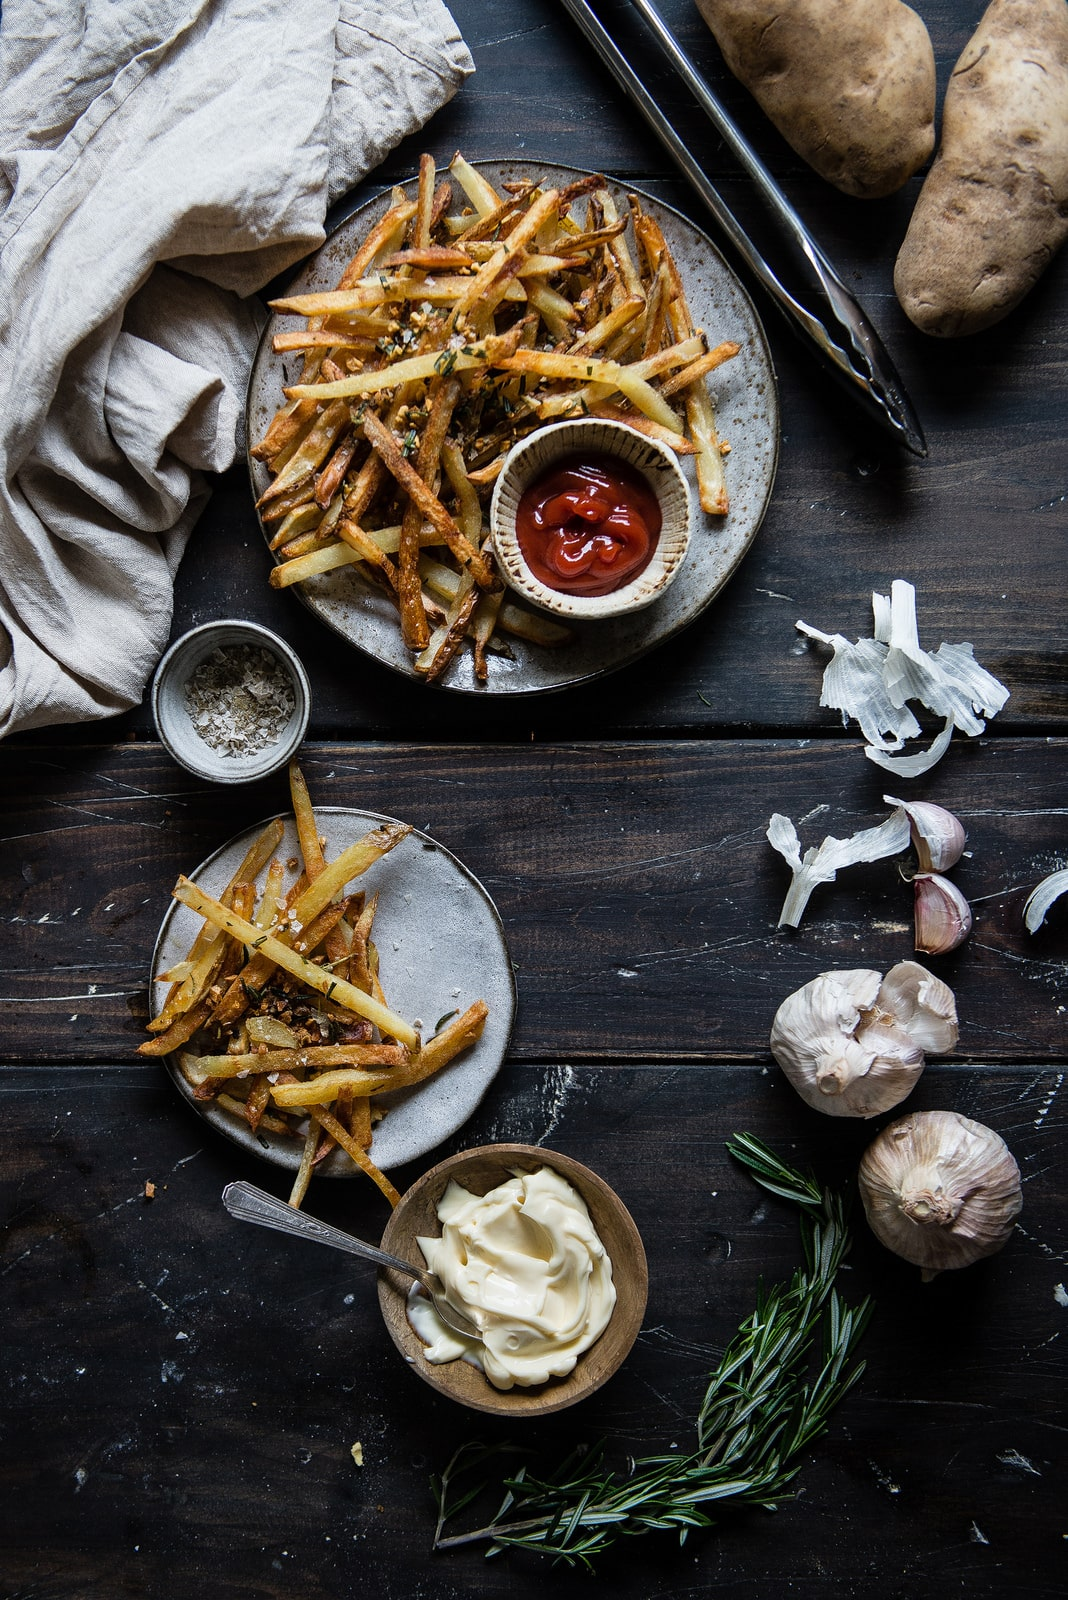 Crispiest Oven Fries, with Rosemary & Garlic | Two Red Bowls. Covetboard Artisan Lifestyle